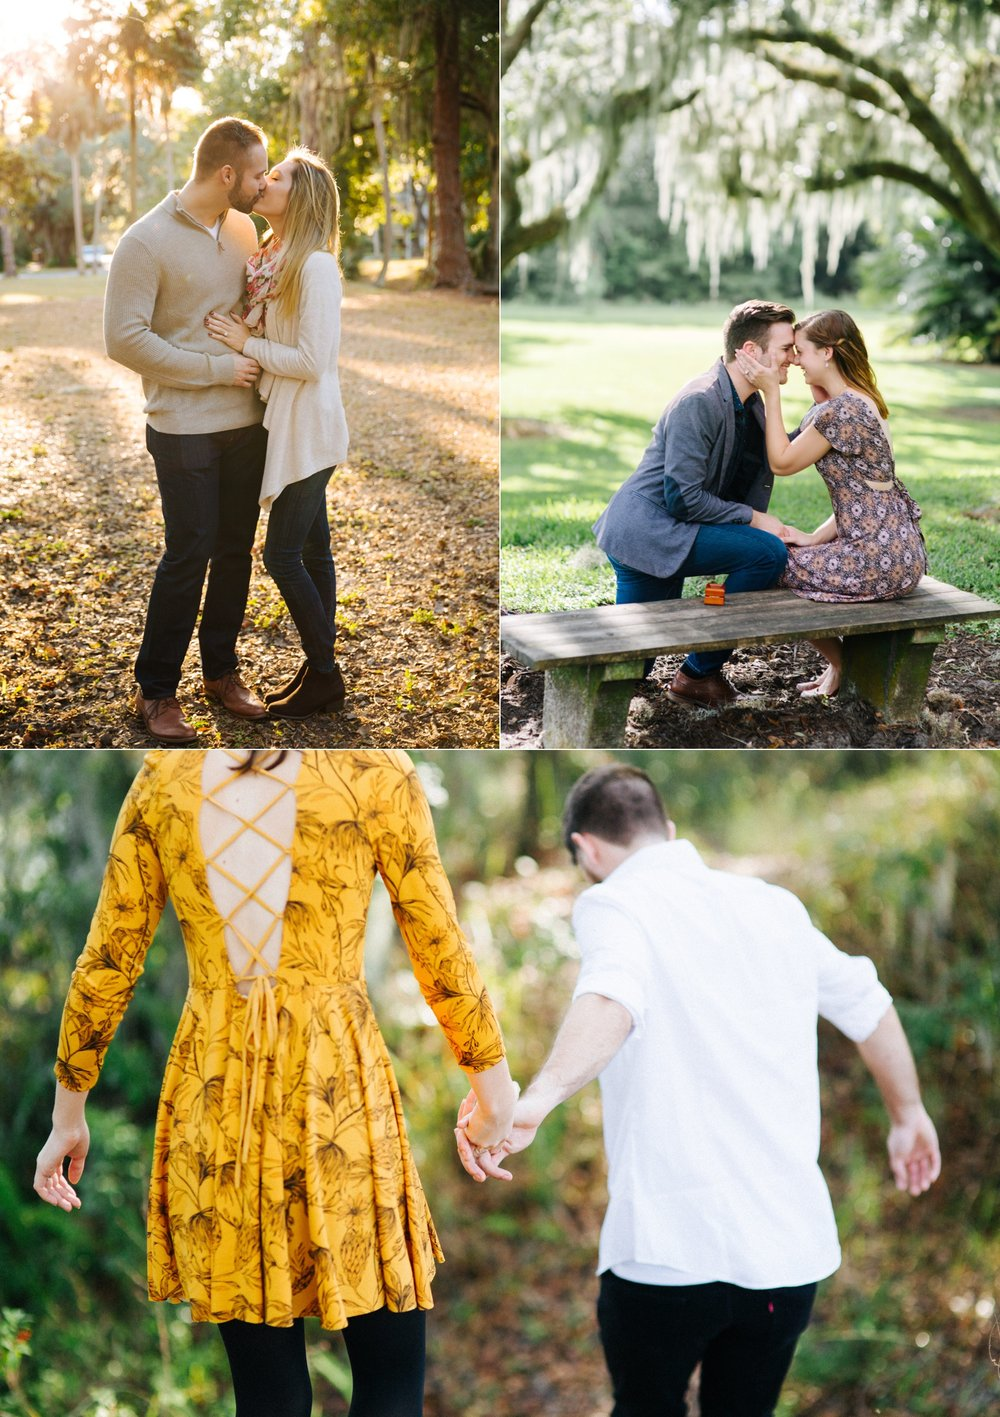 Jake & Katie Photography Best of Couples 2016-019.jpg